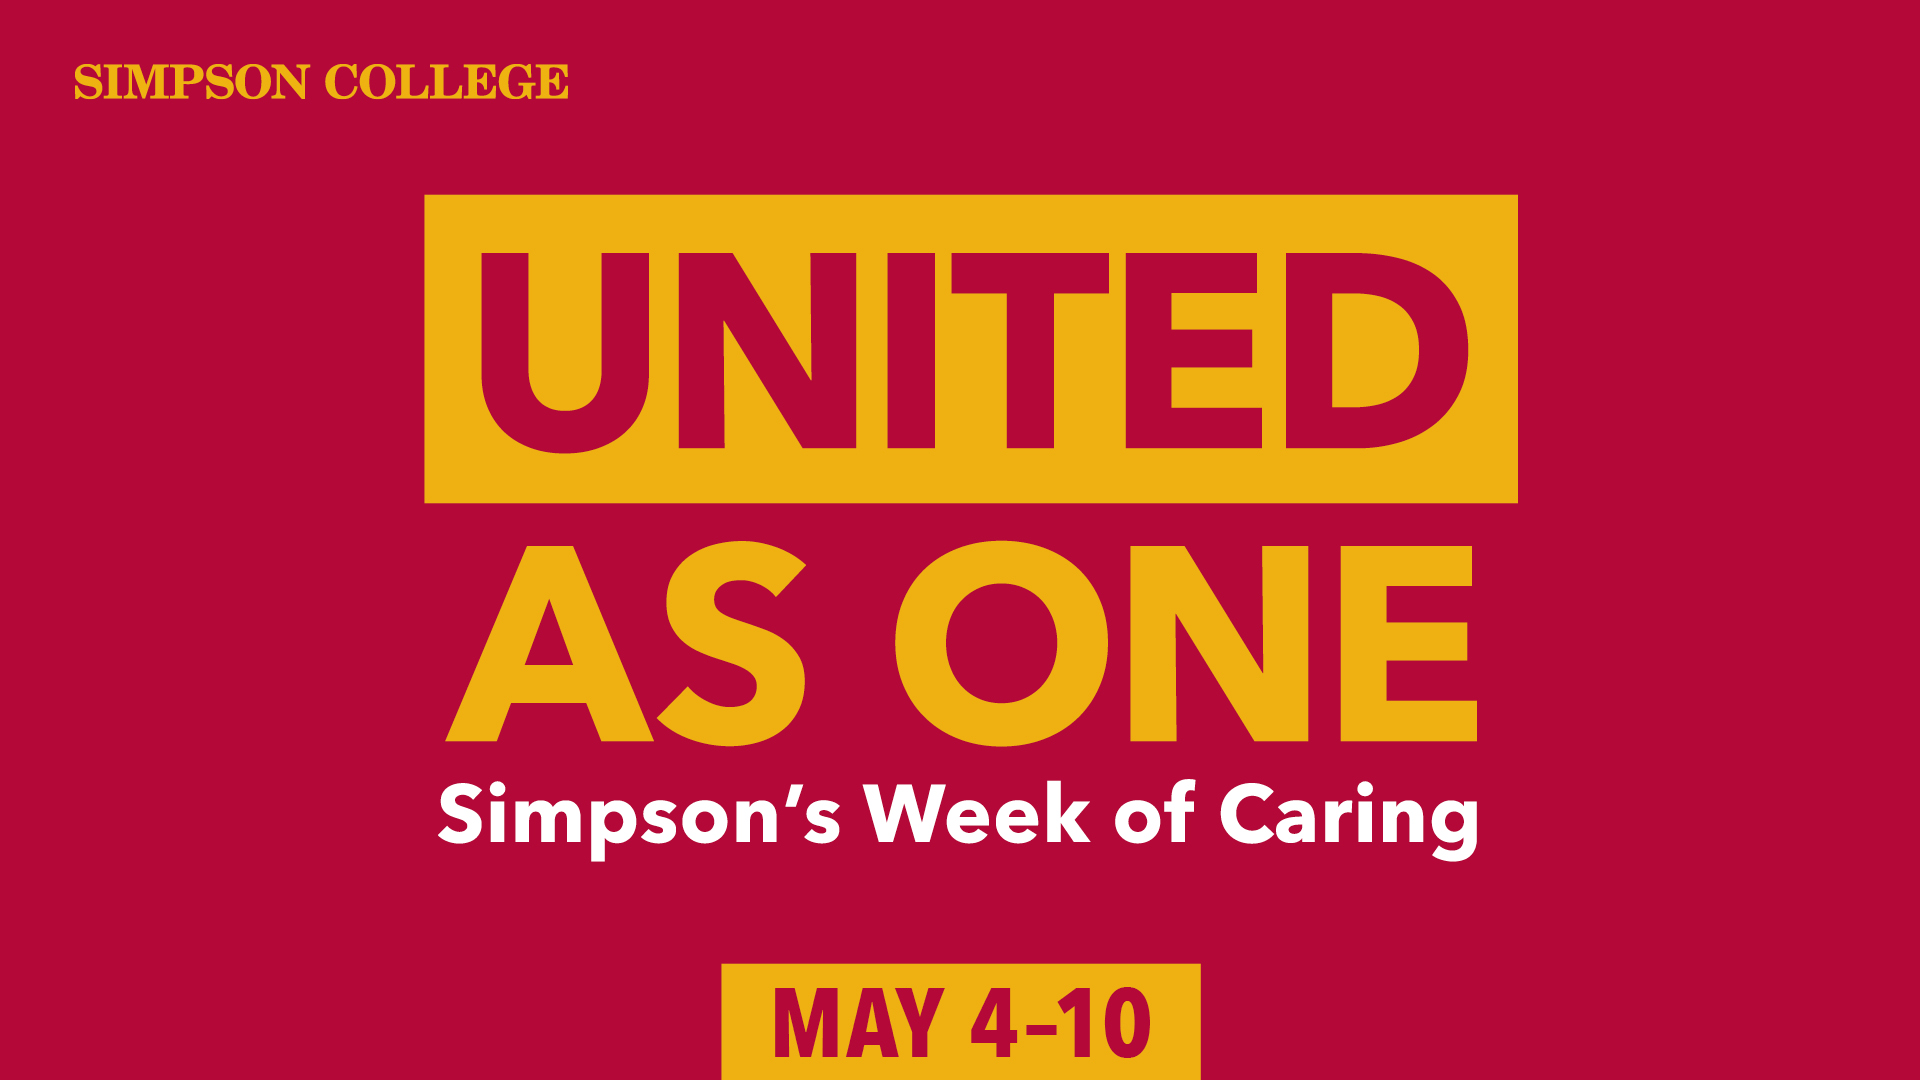 United as ONE: Simpson's Week of Caring Logo